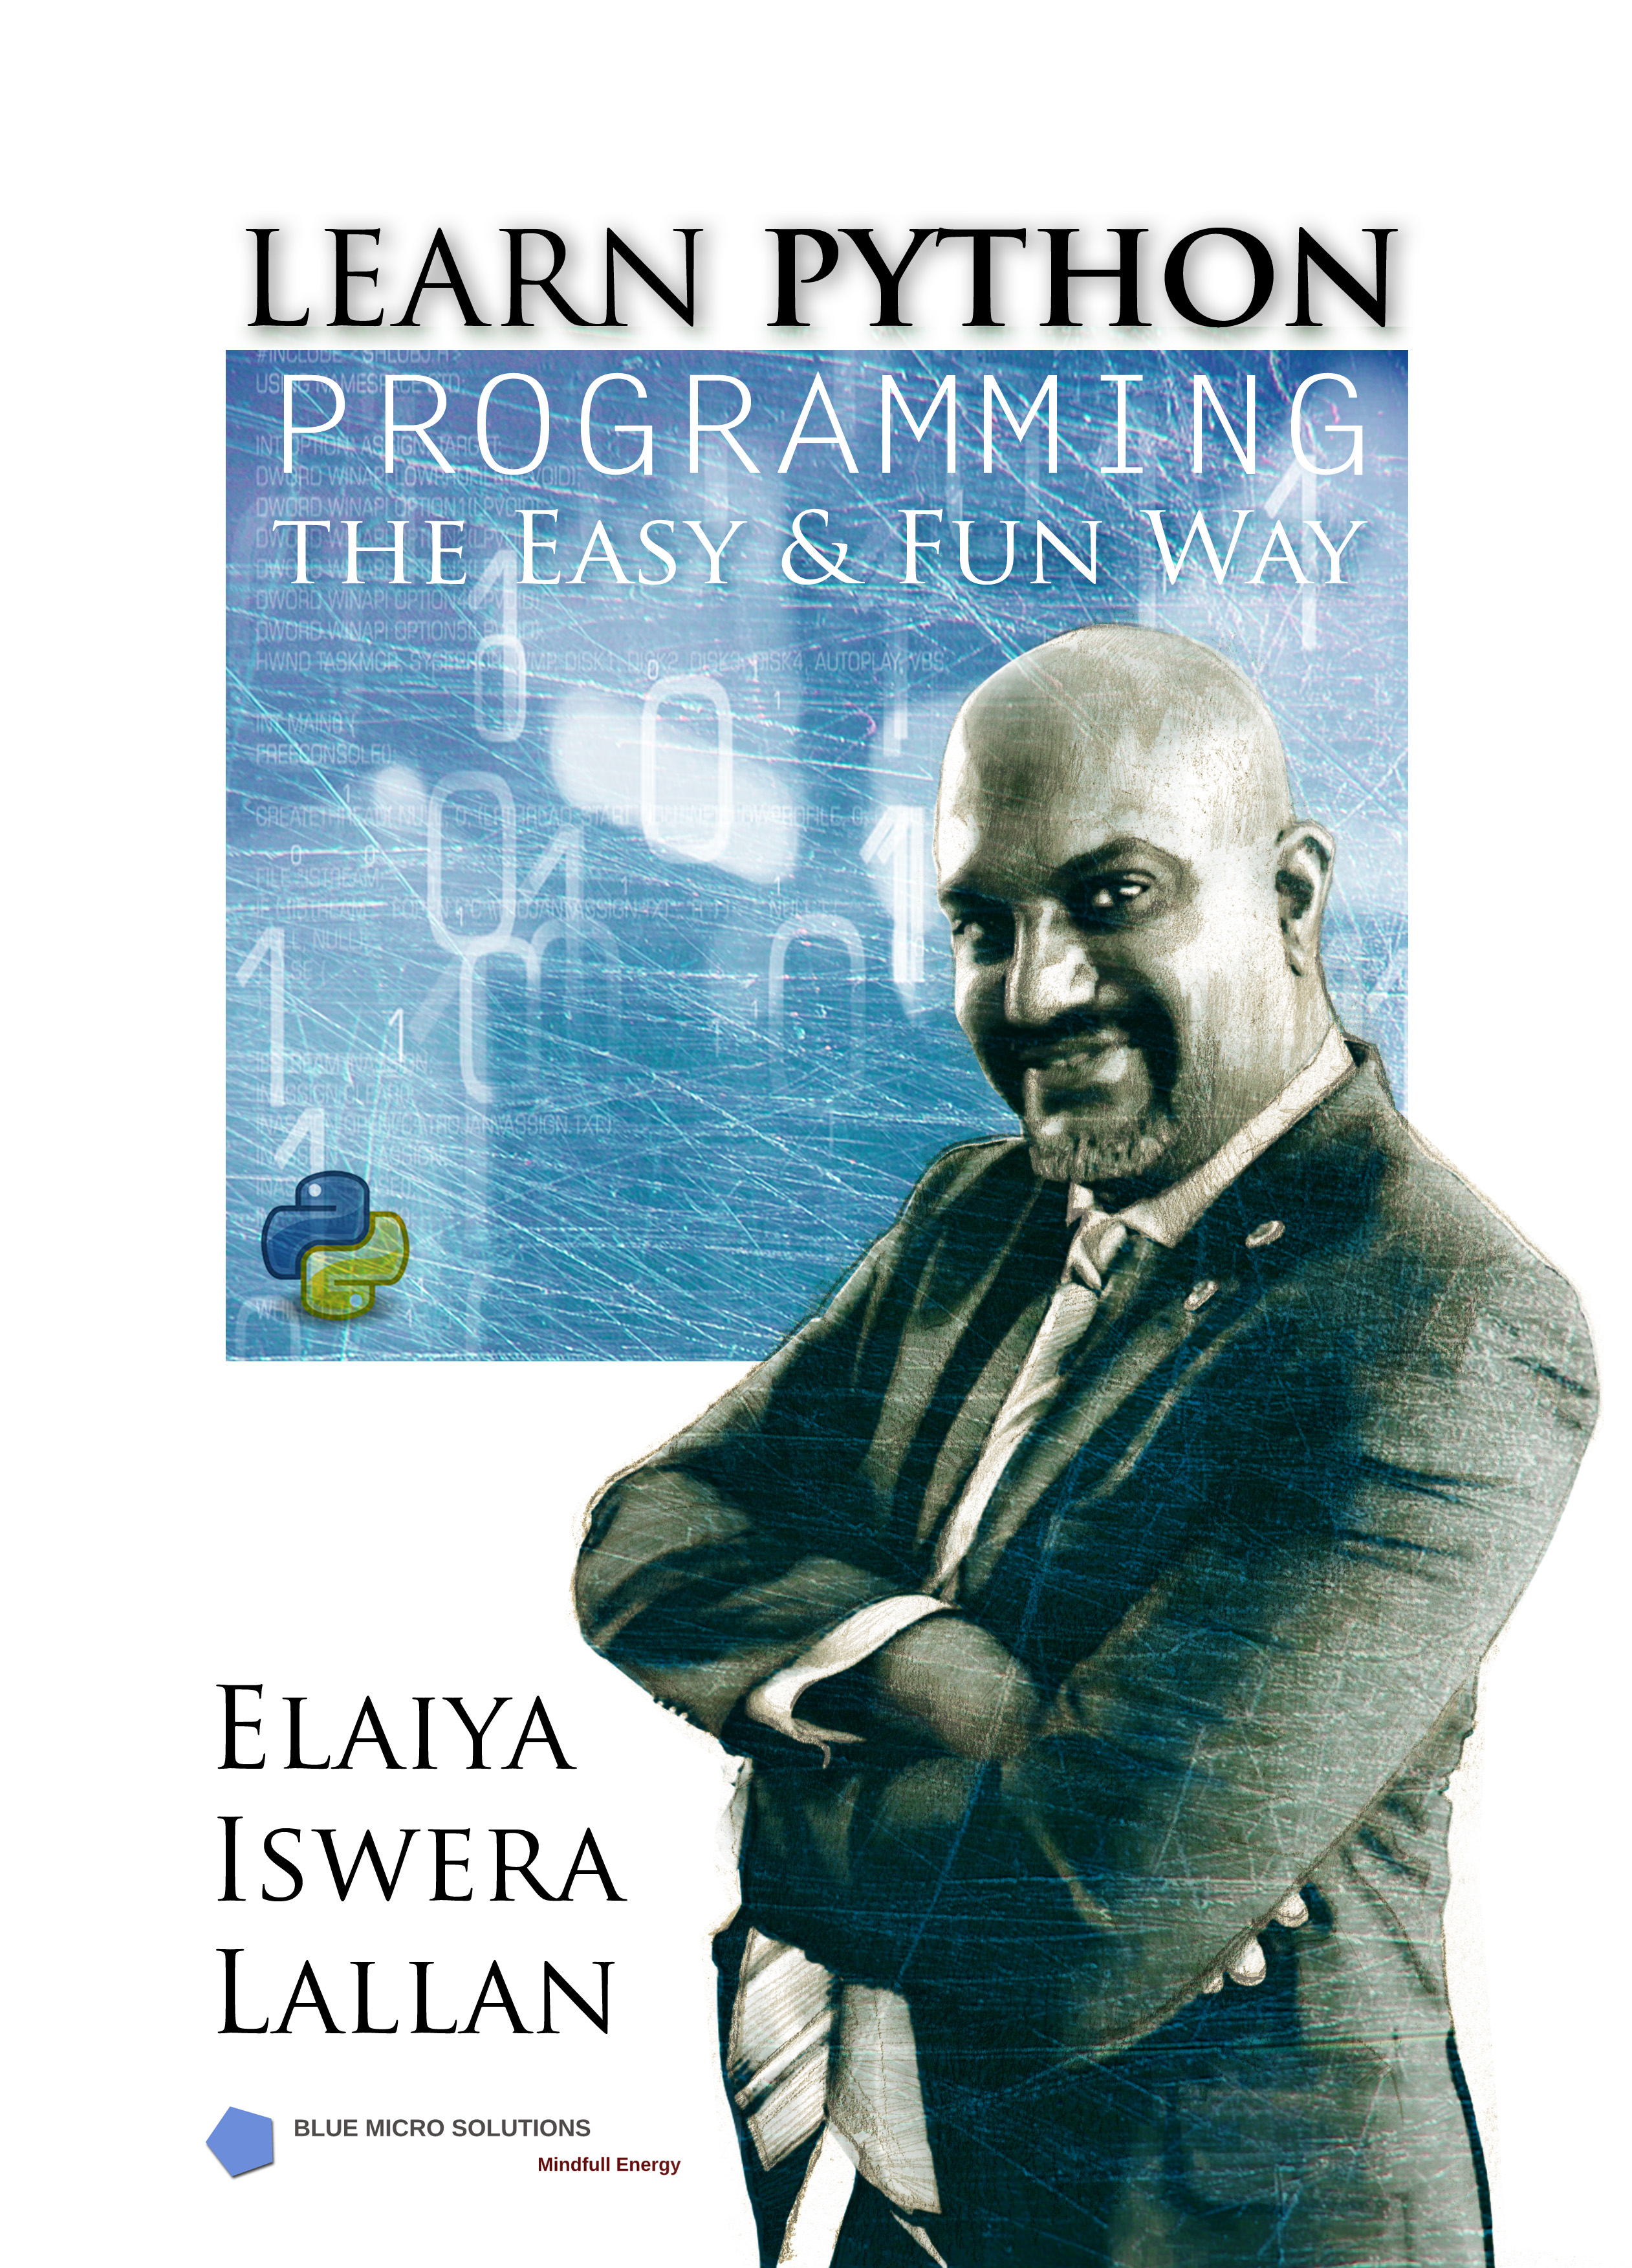 Learn Python Programming the Easy and Fun Way, an Ebook by Dr Elaiya Iswera  Lallan